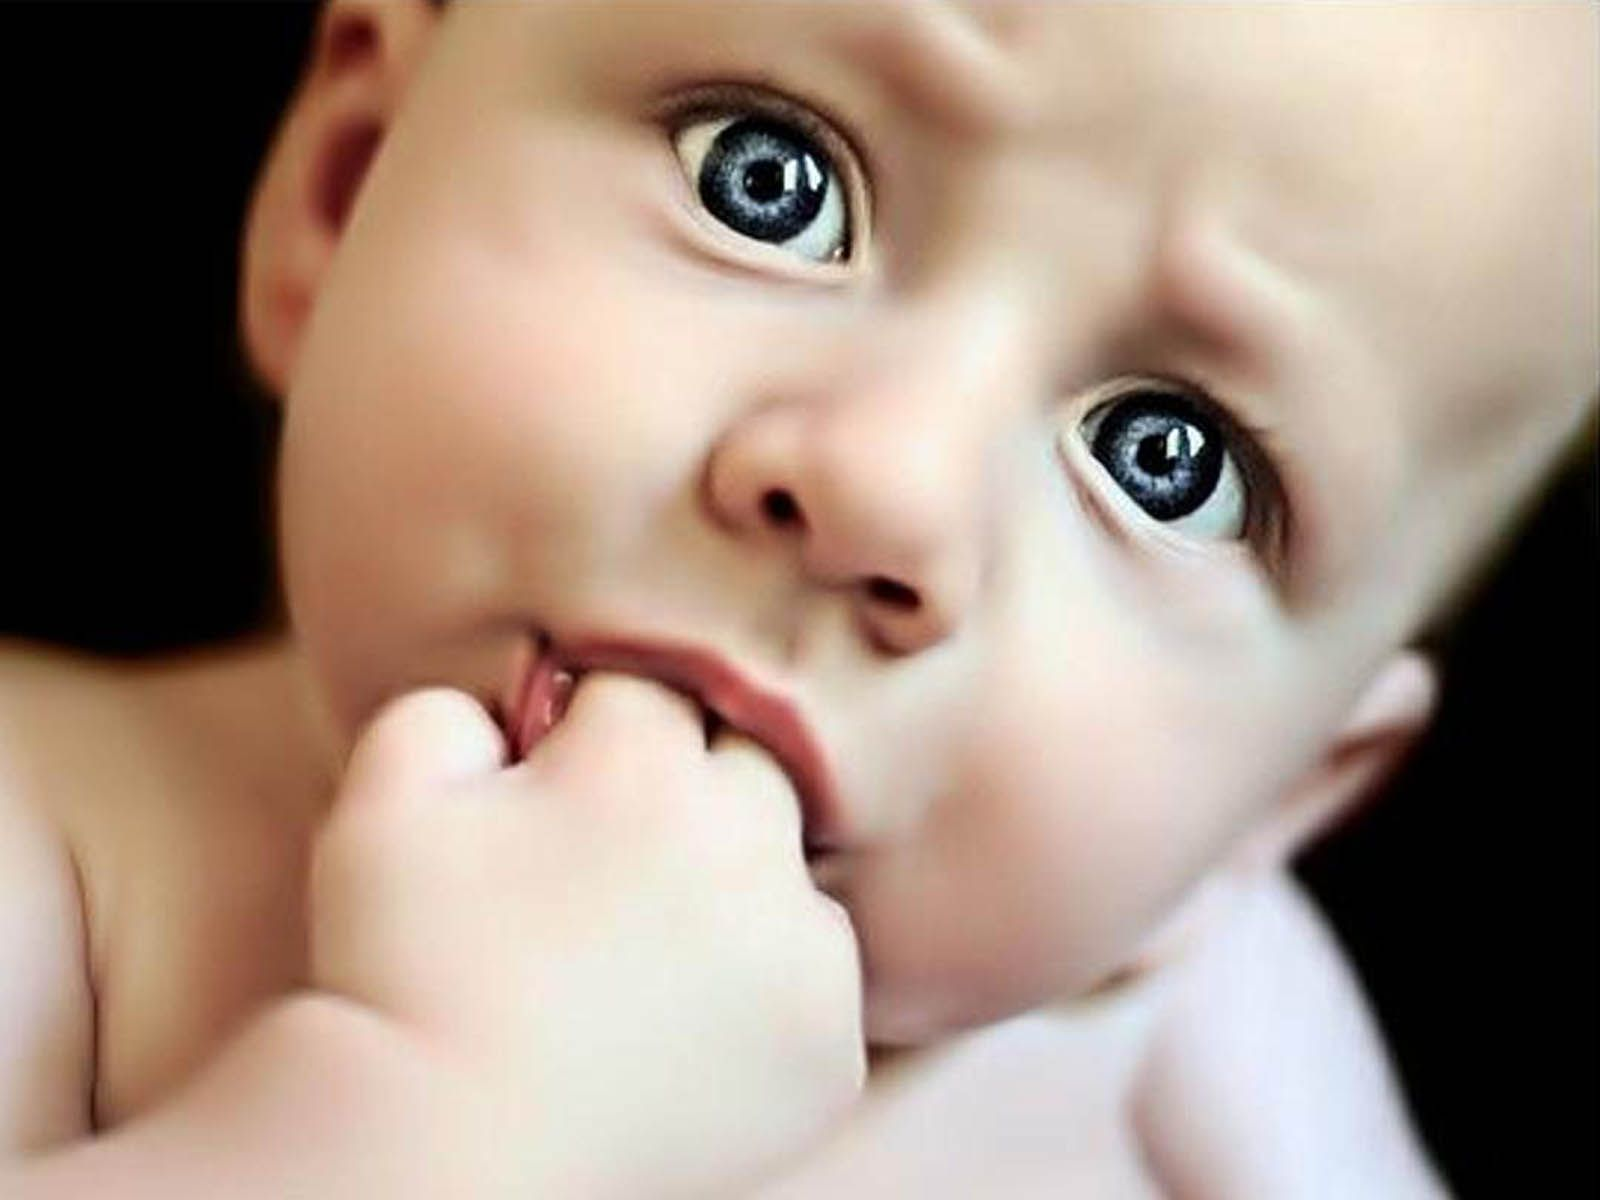 Funny wallpapers of babies funny pinterest baby finger funny wallpapers of babies voltagebd Choice Image